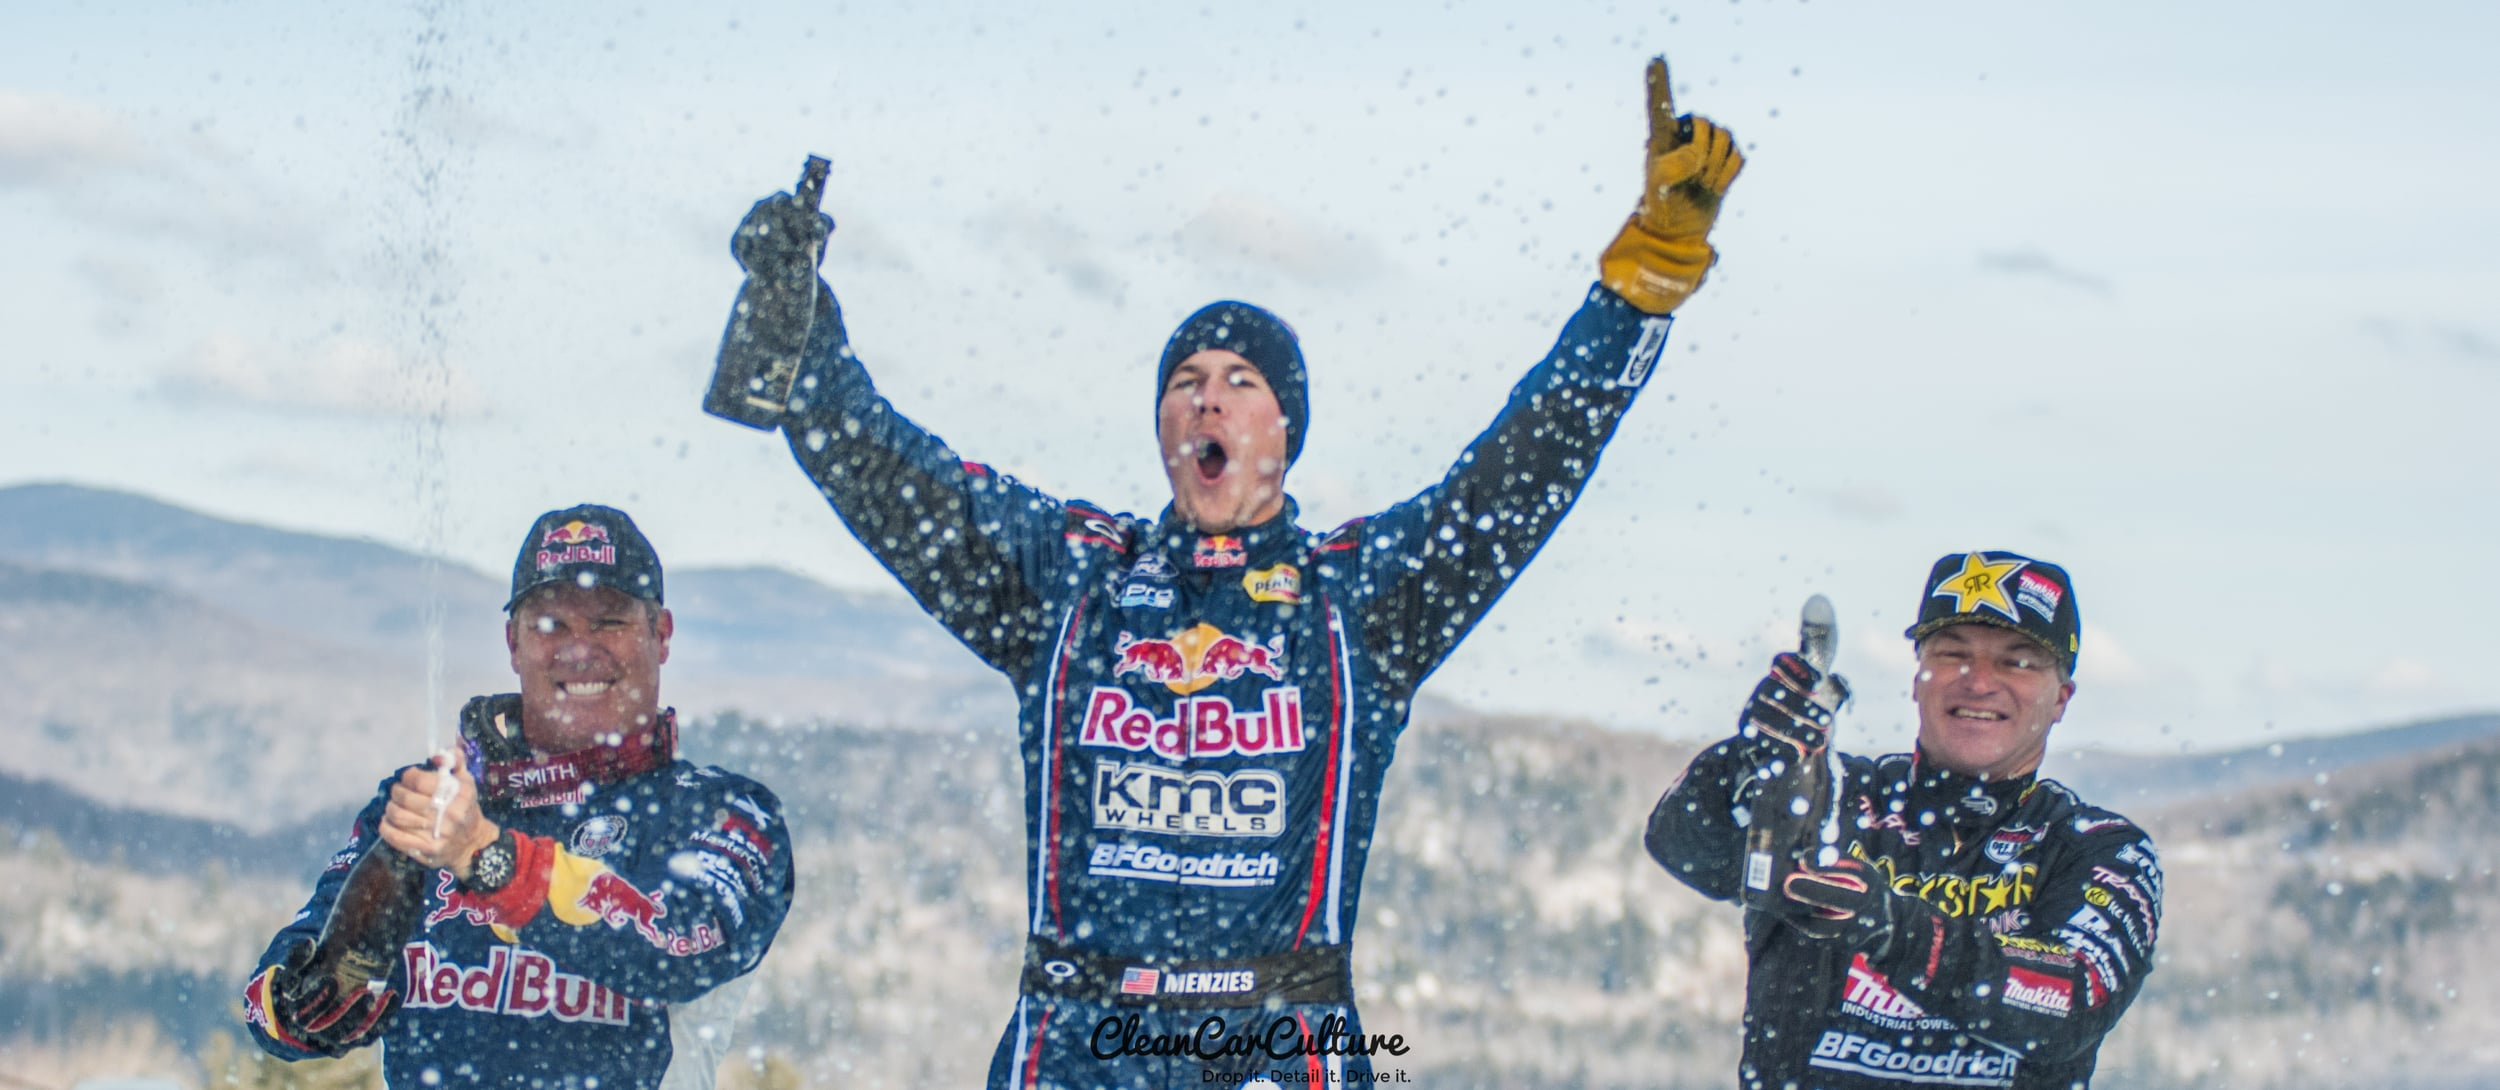 FrozenRush2016-0529.jpg